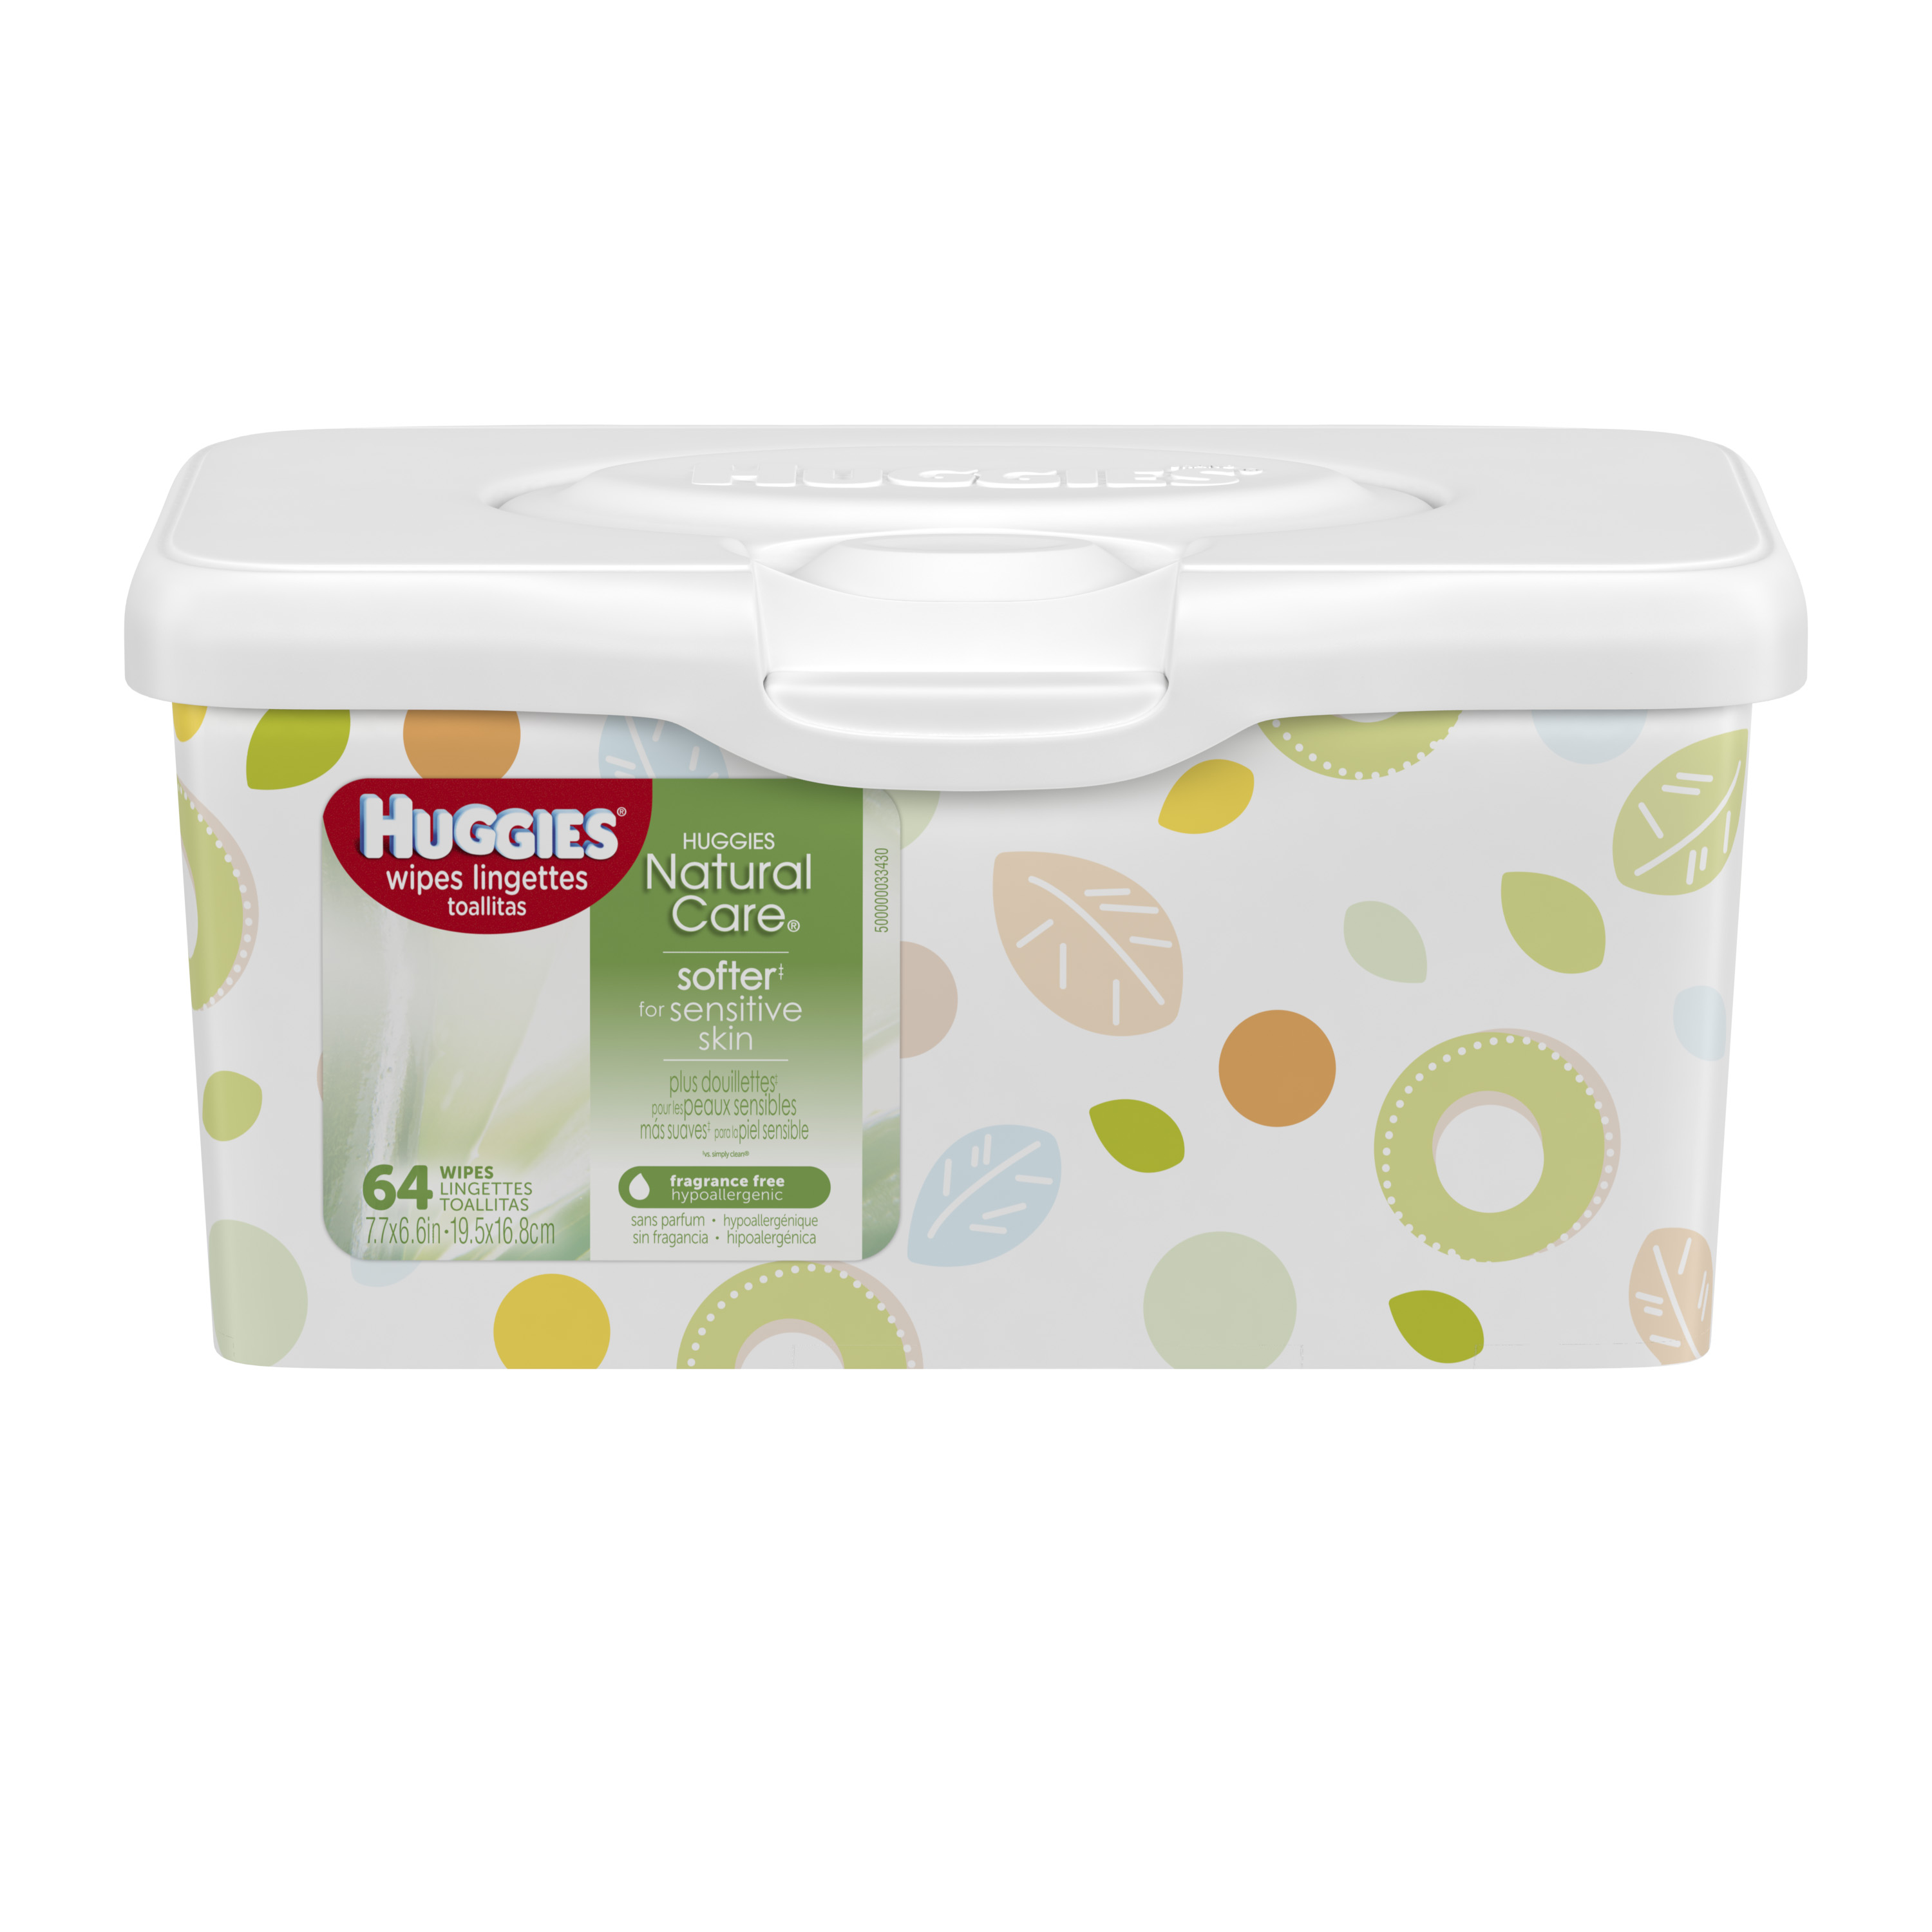 Huggies Natural Care Baby Wipes, Unscented Tub (64 ct)